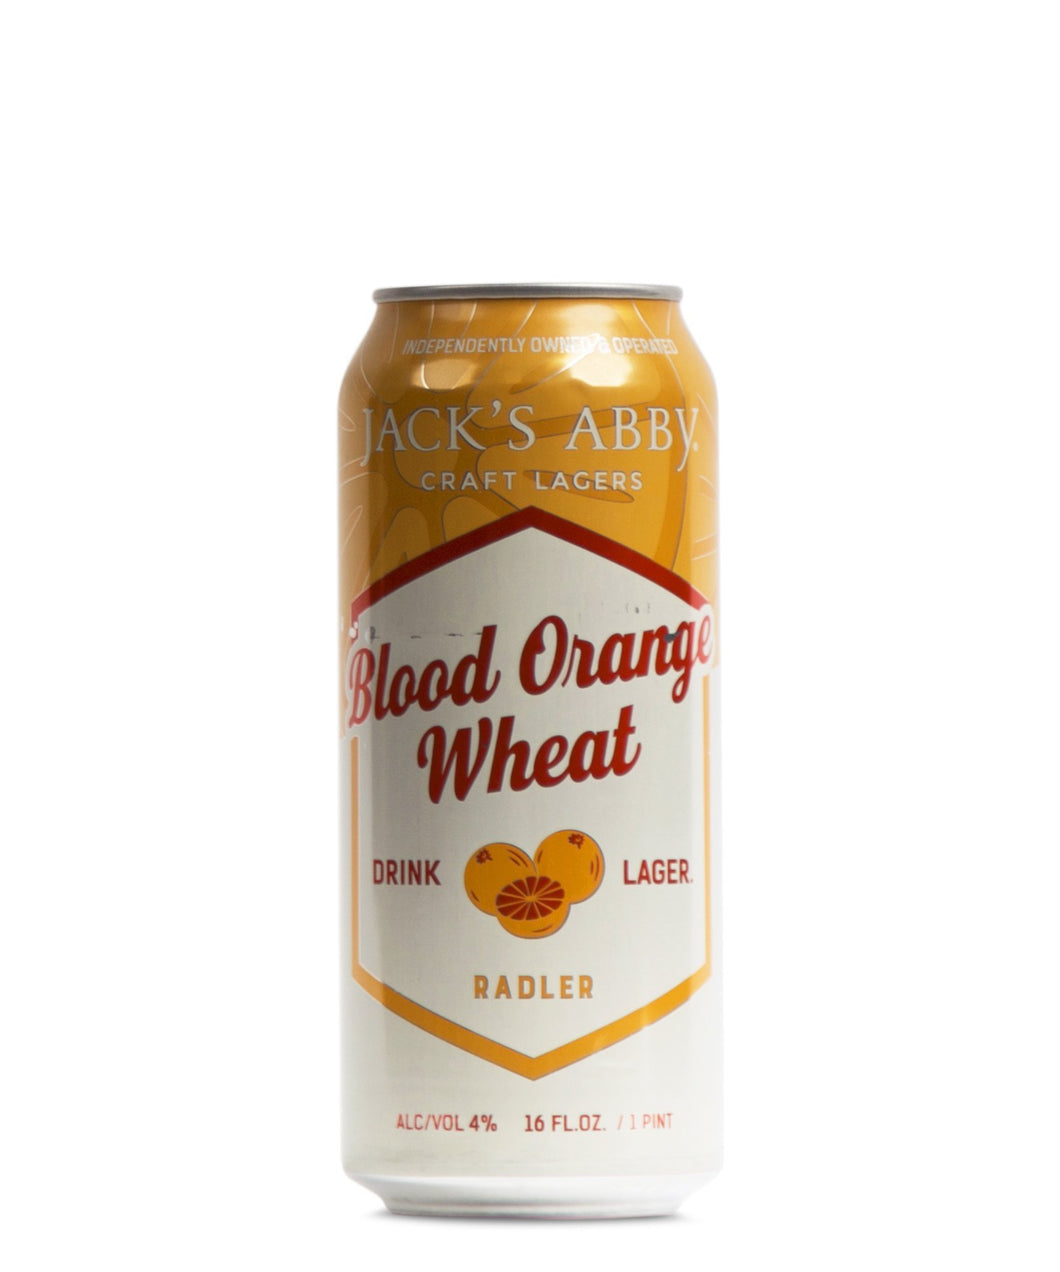 Blood Orange Wheat - Jacks Abby Craft Lagers Delivered By TapRm